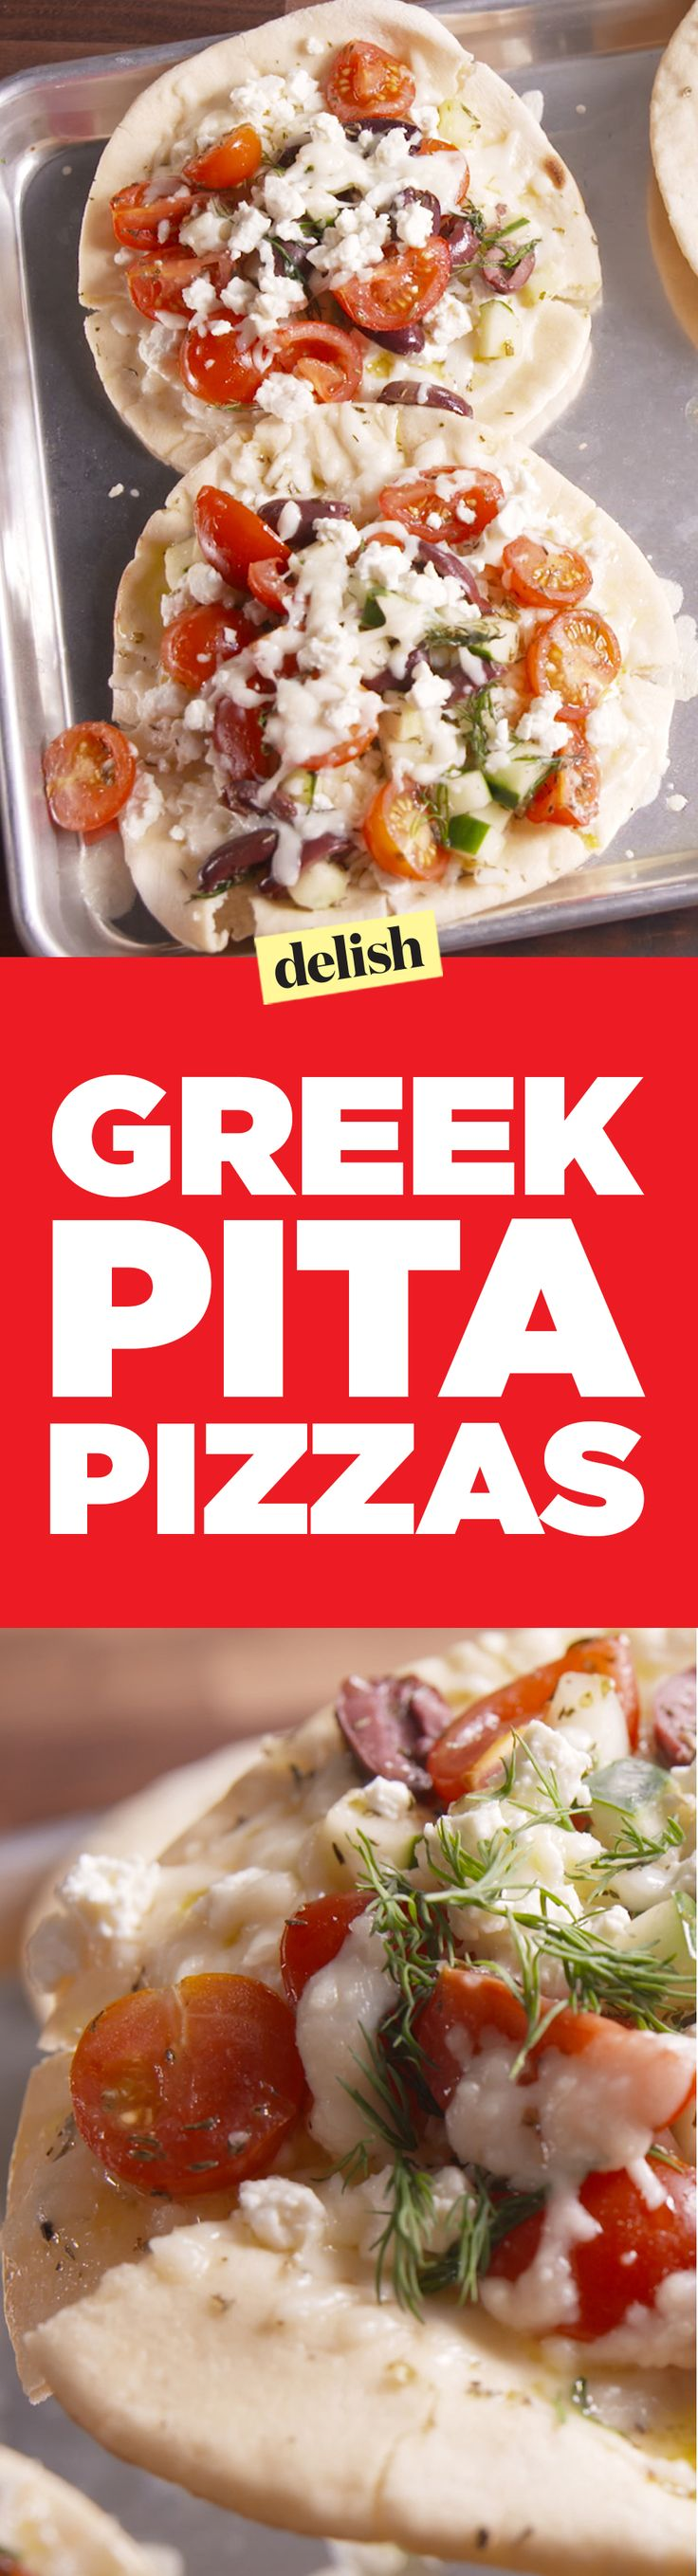 Greek pita pizzas are a healthy twist on your favorite carb. Get the recipe on Delish.com.